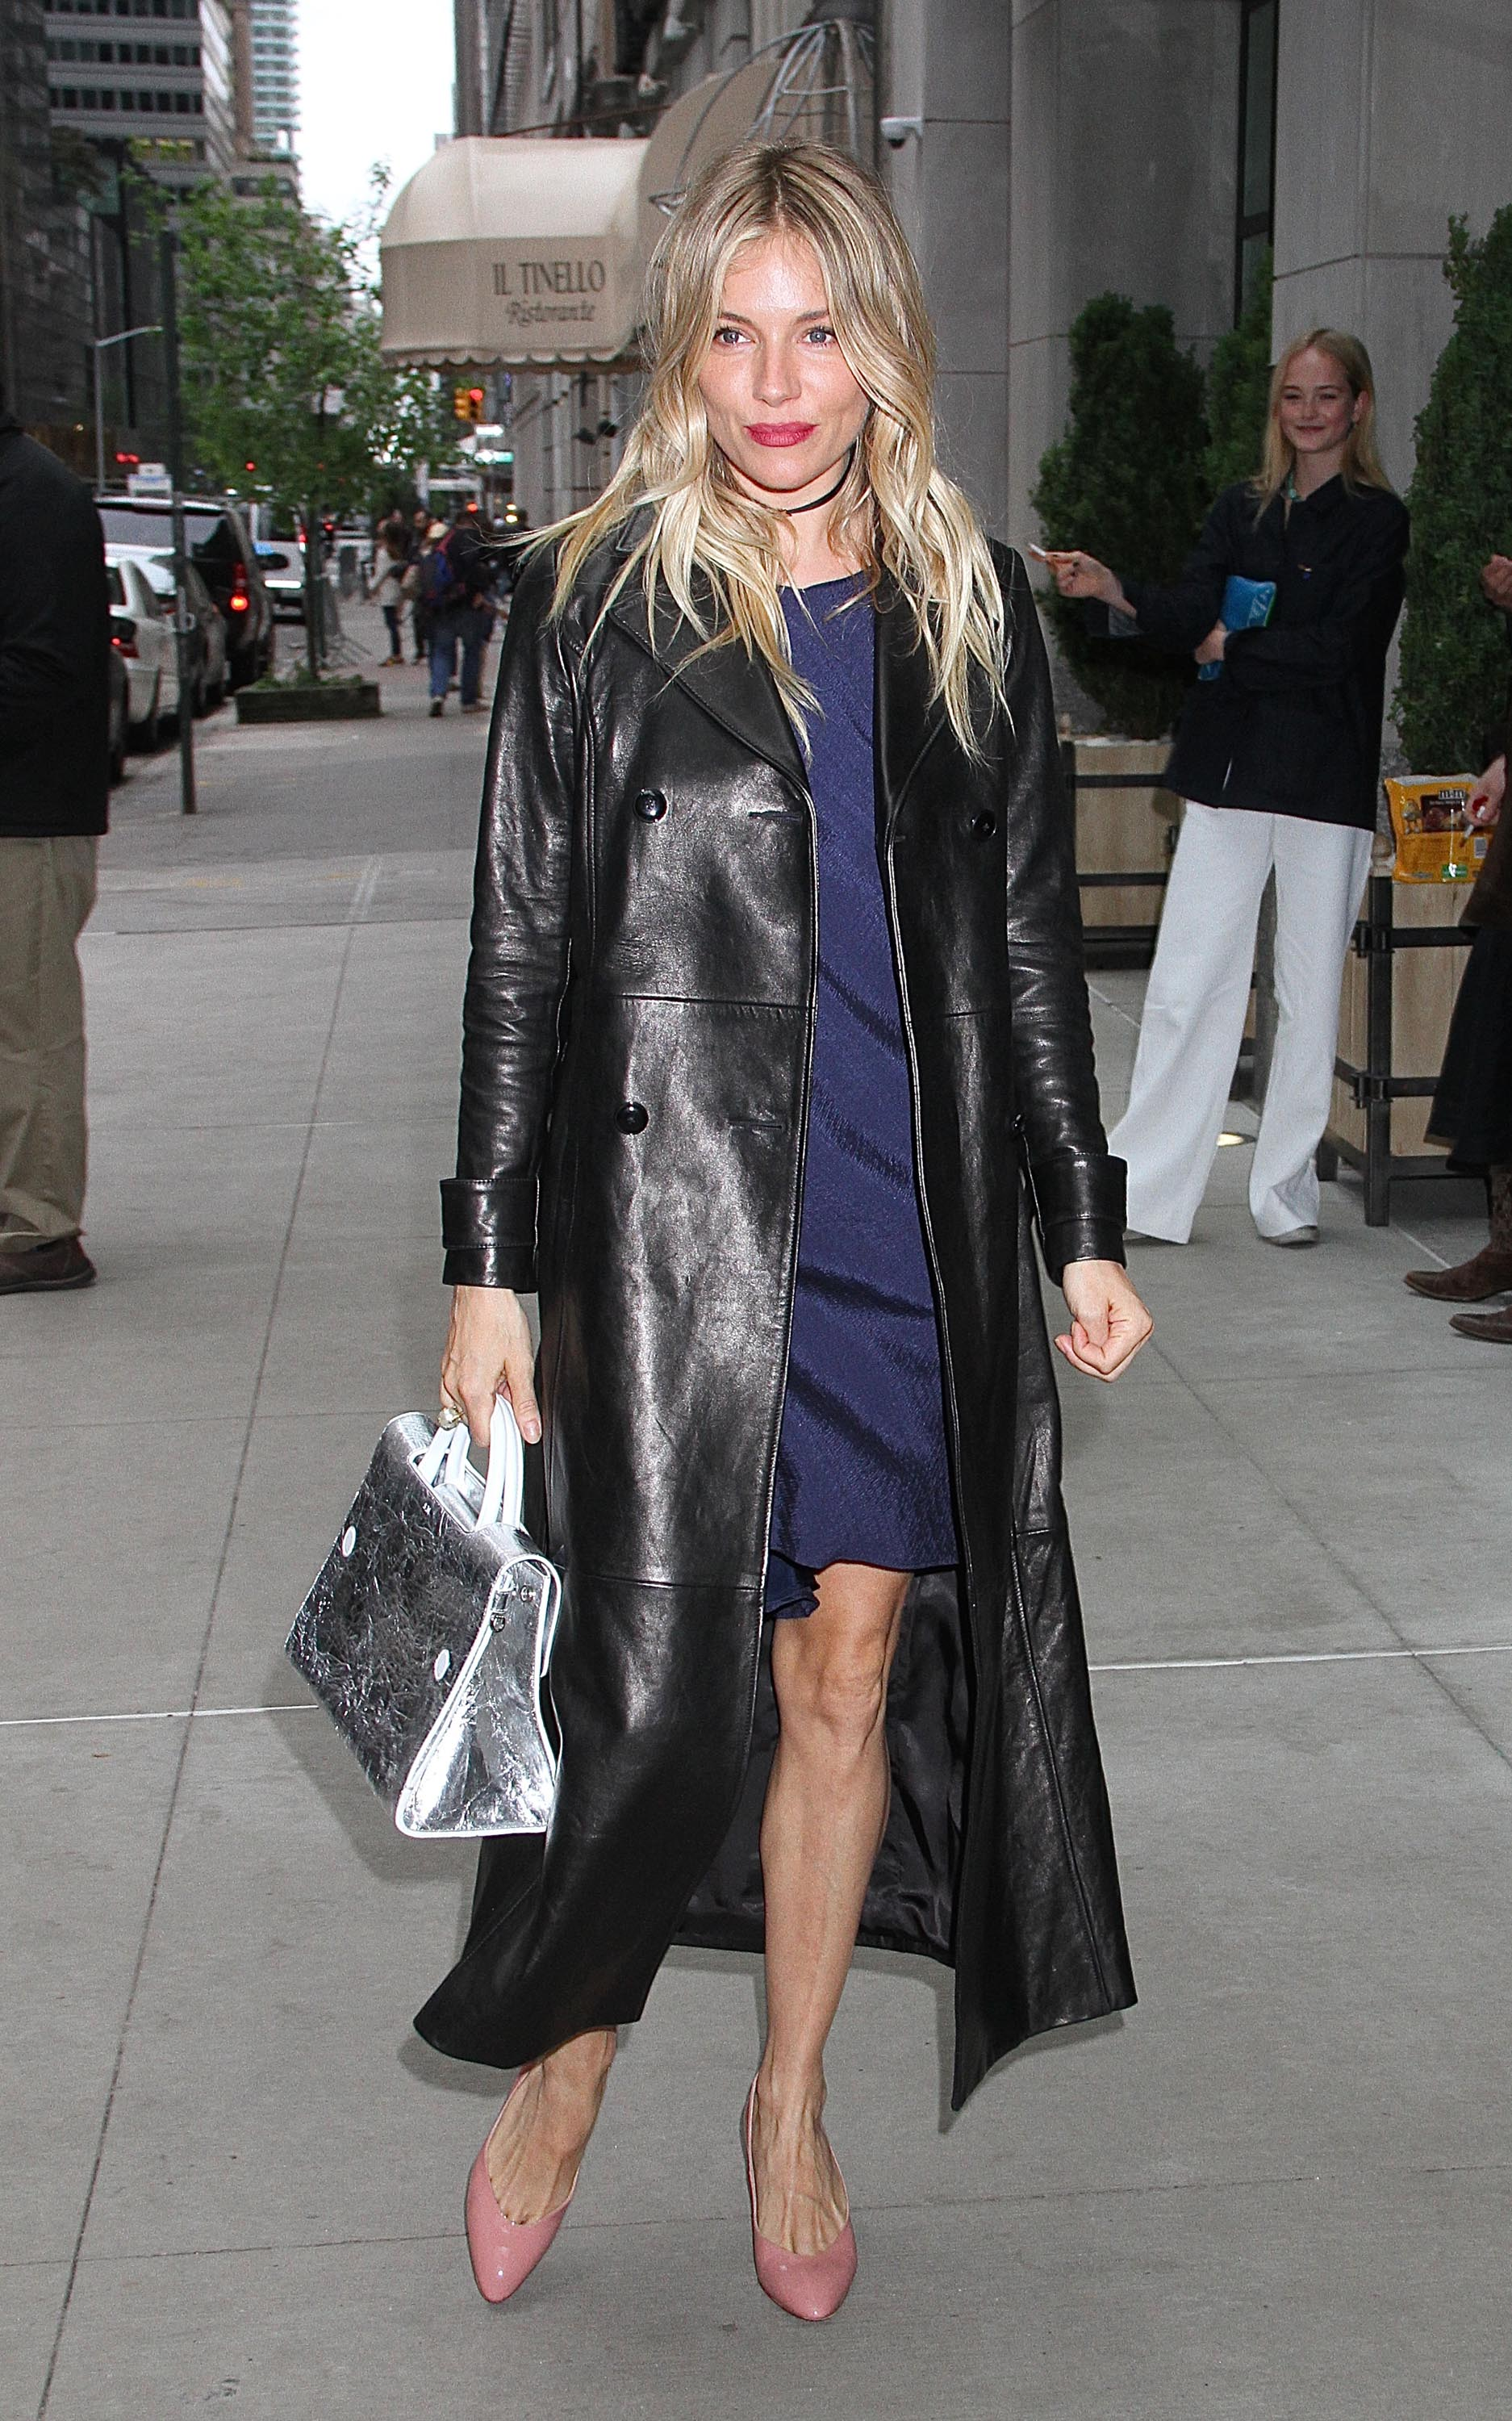 Sienna Miller arriving at a screening of the film '3 Generations'